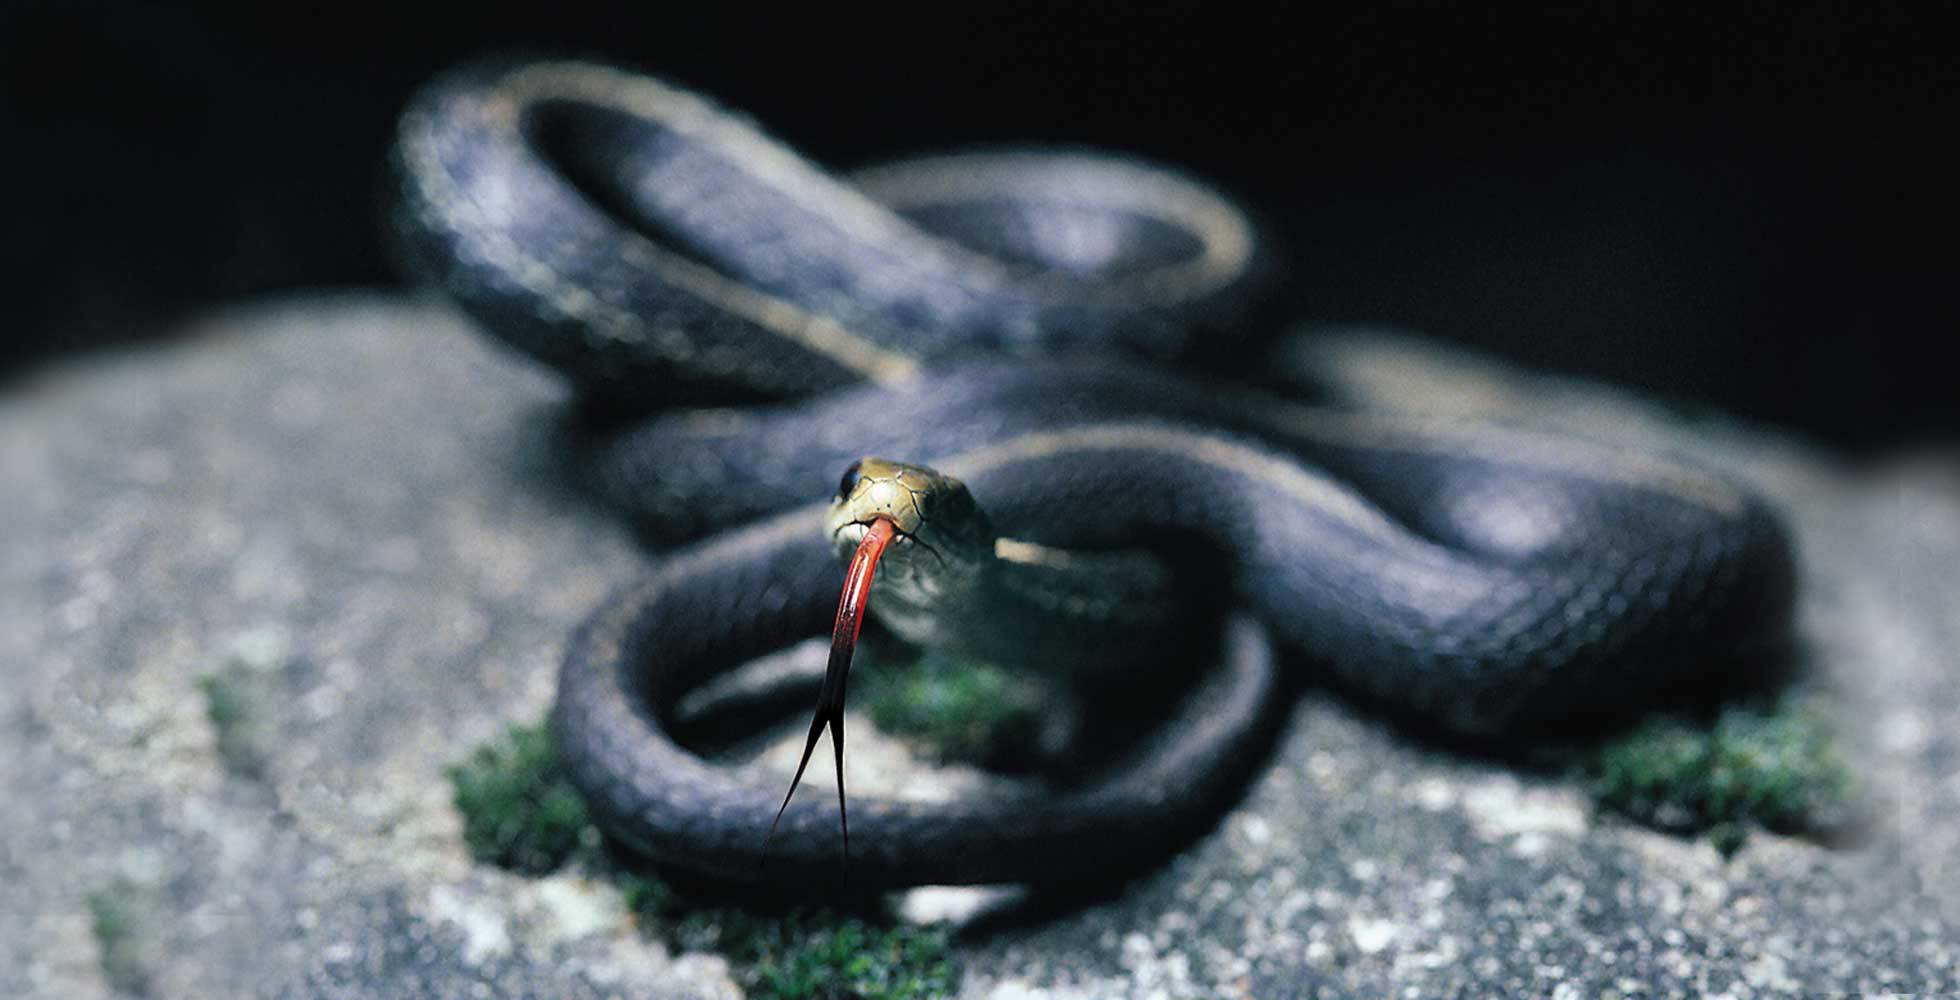 A coiled black snake with red forked tongue